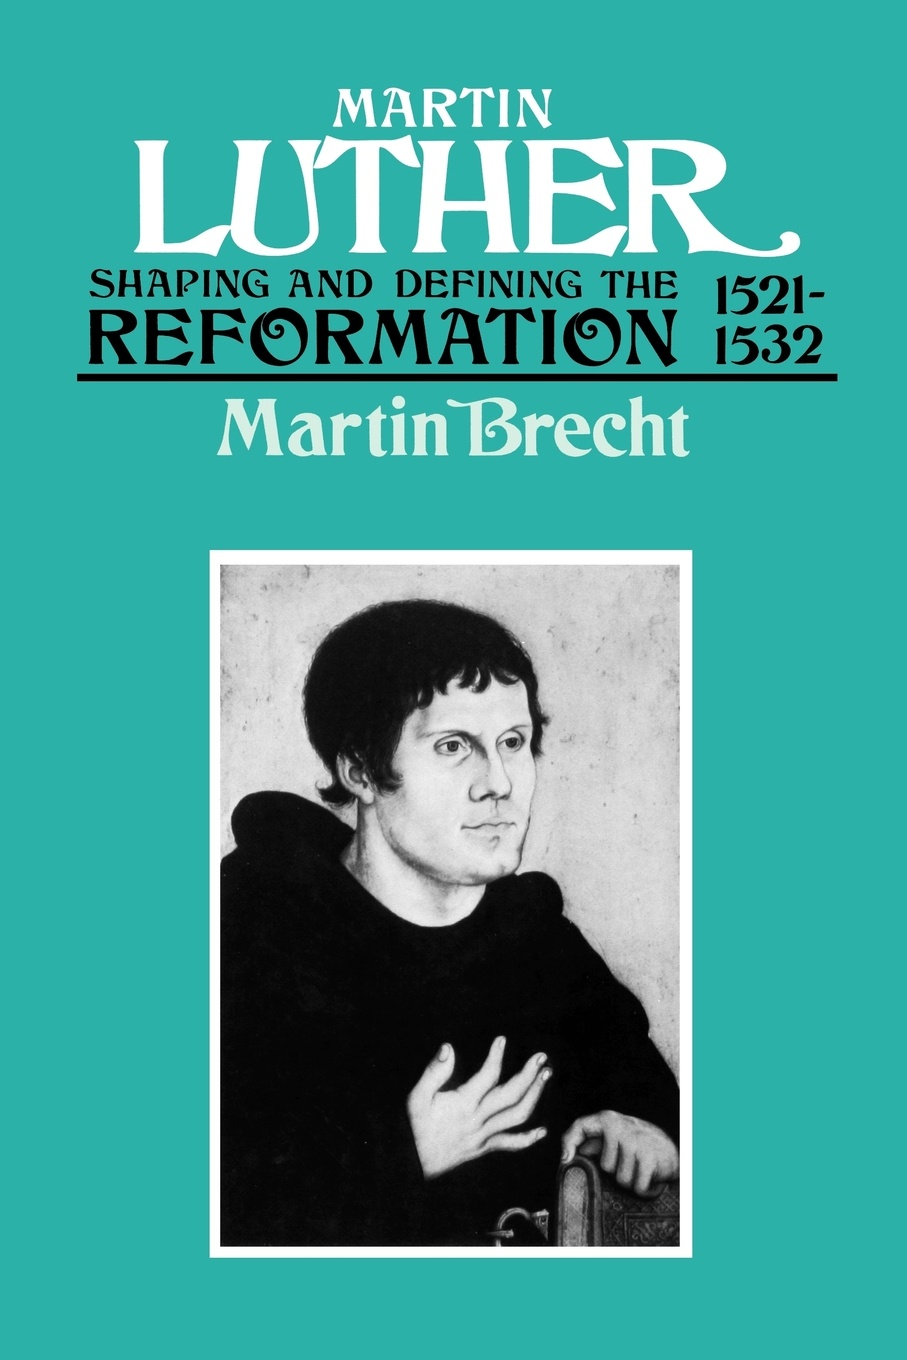 Martin Brecht, James L. Schaaf Luther 1521-1532. Shaping and Defining the Reformation